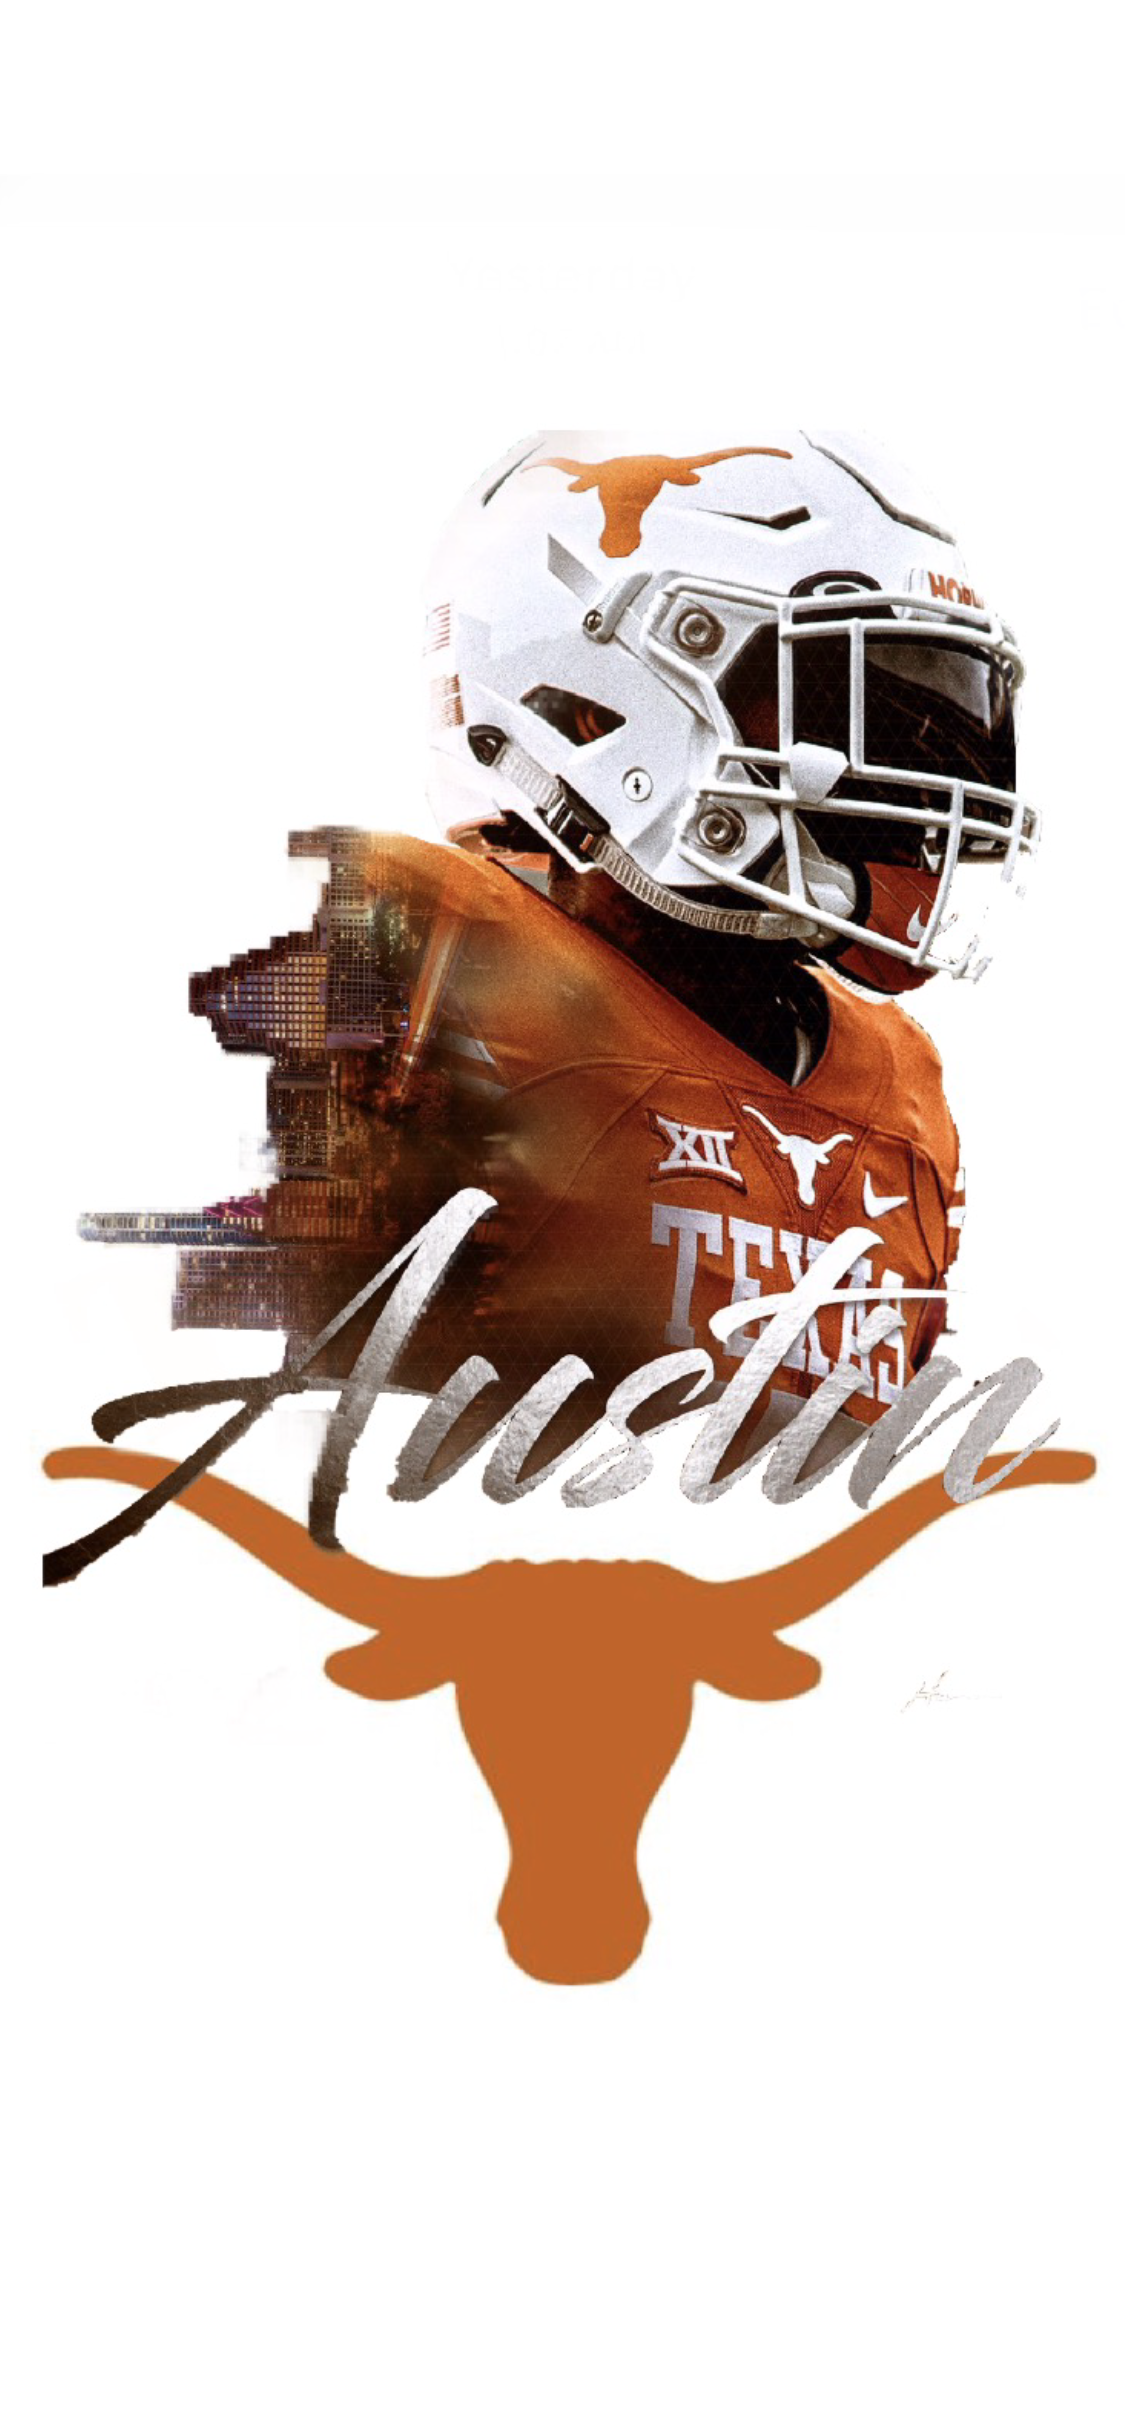 Pin By Dustin P Bruns On Texas Longhorns Wallpaper Football Helmets Helmet Texas Longhorns